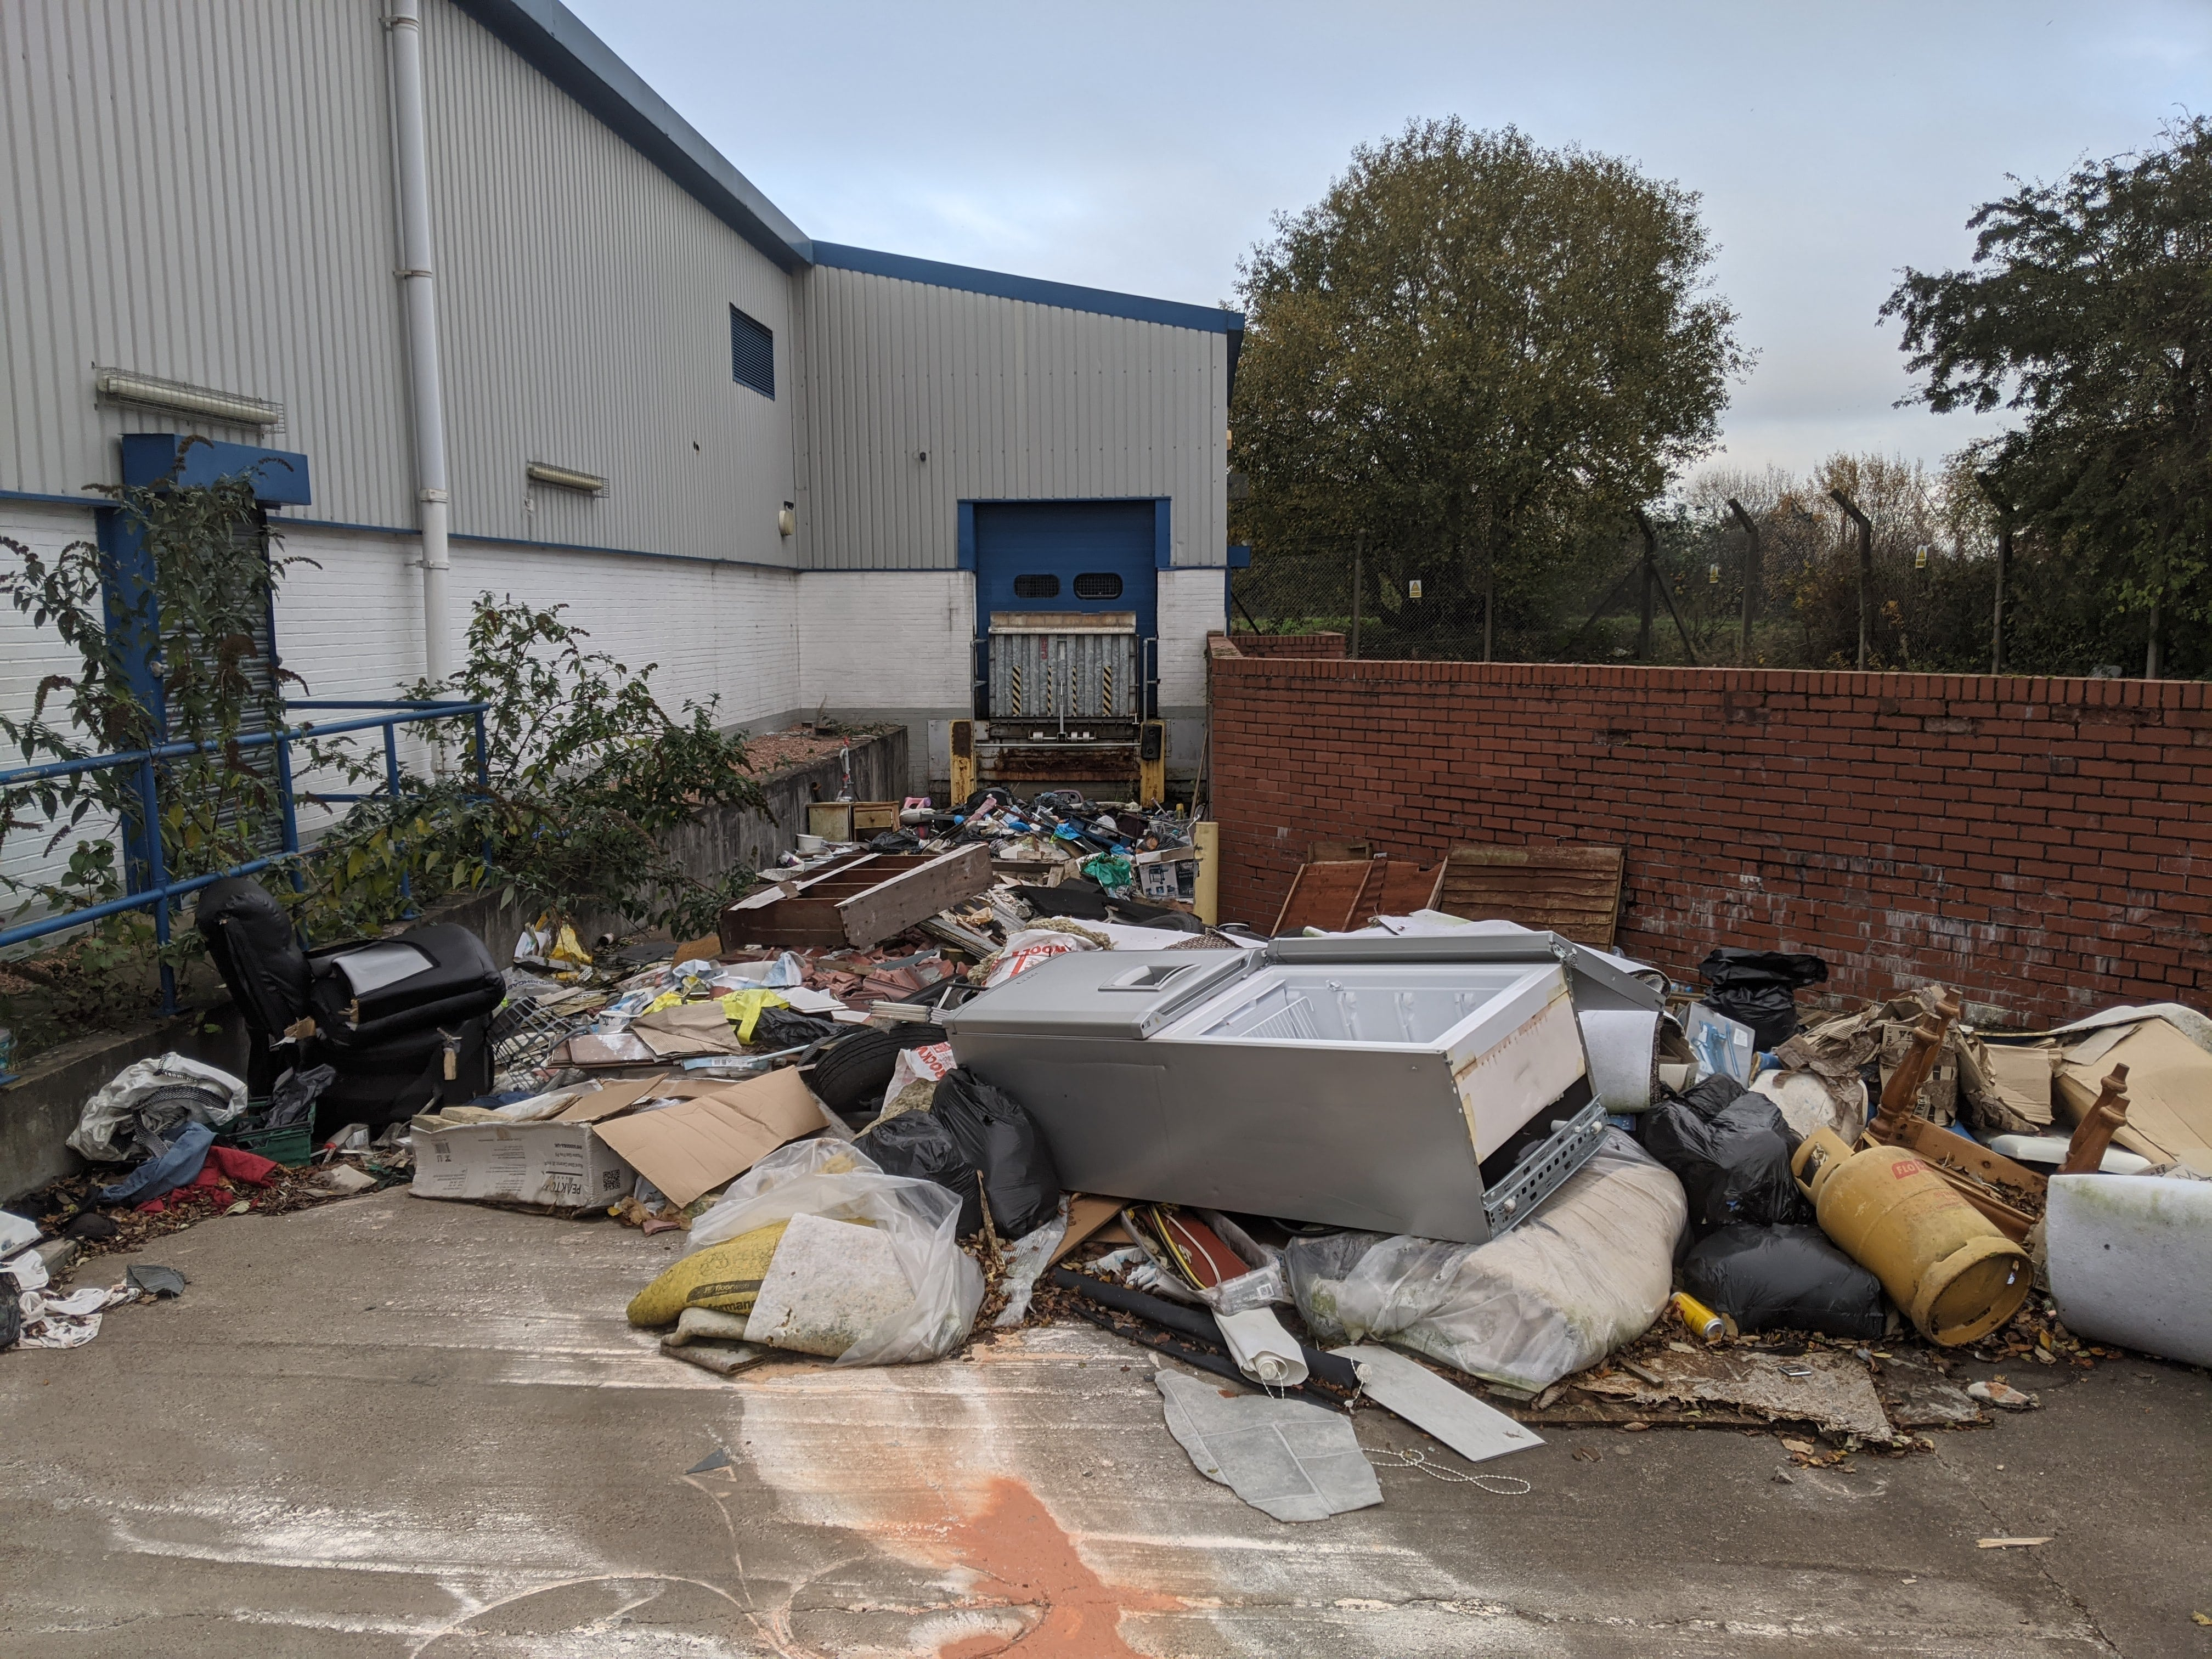 Clydebank Fly Tipping